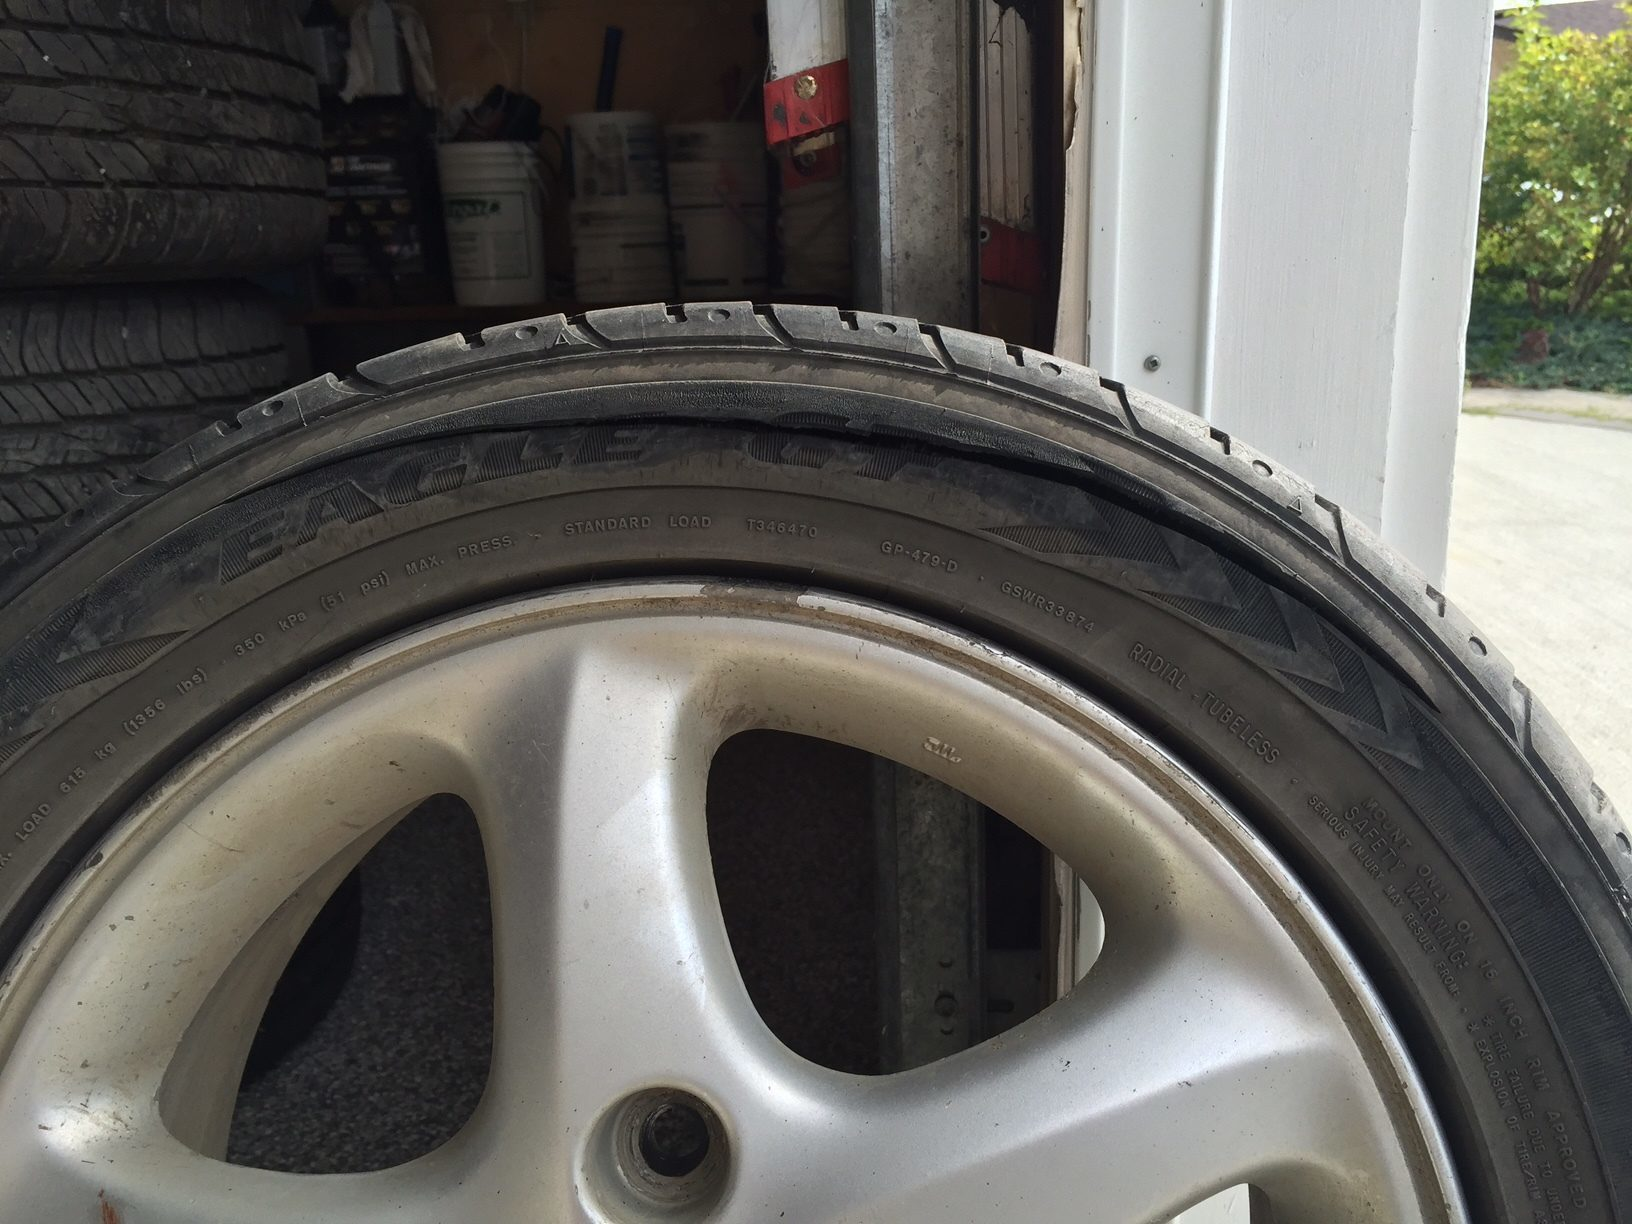 How do you fix a tire that makes excessive noise?